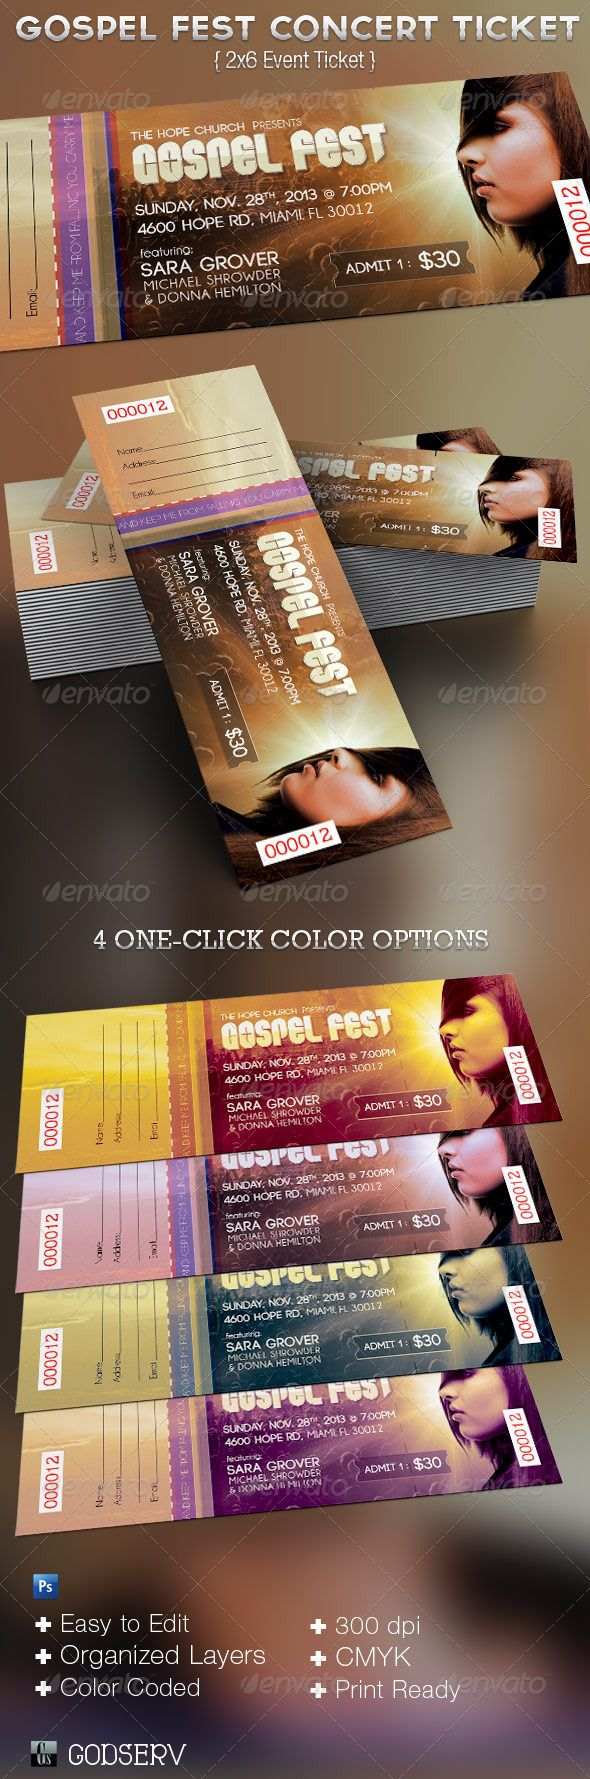 1000 ideas about Concert Ticket Template – Concert Ticket Templates